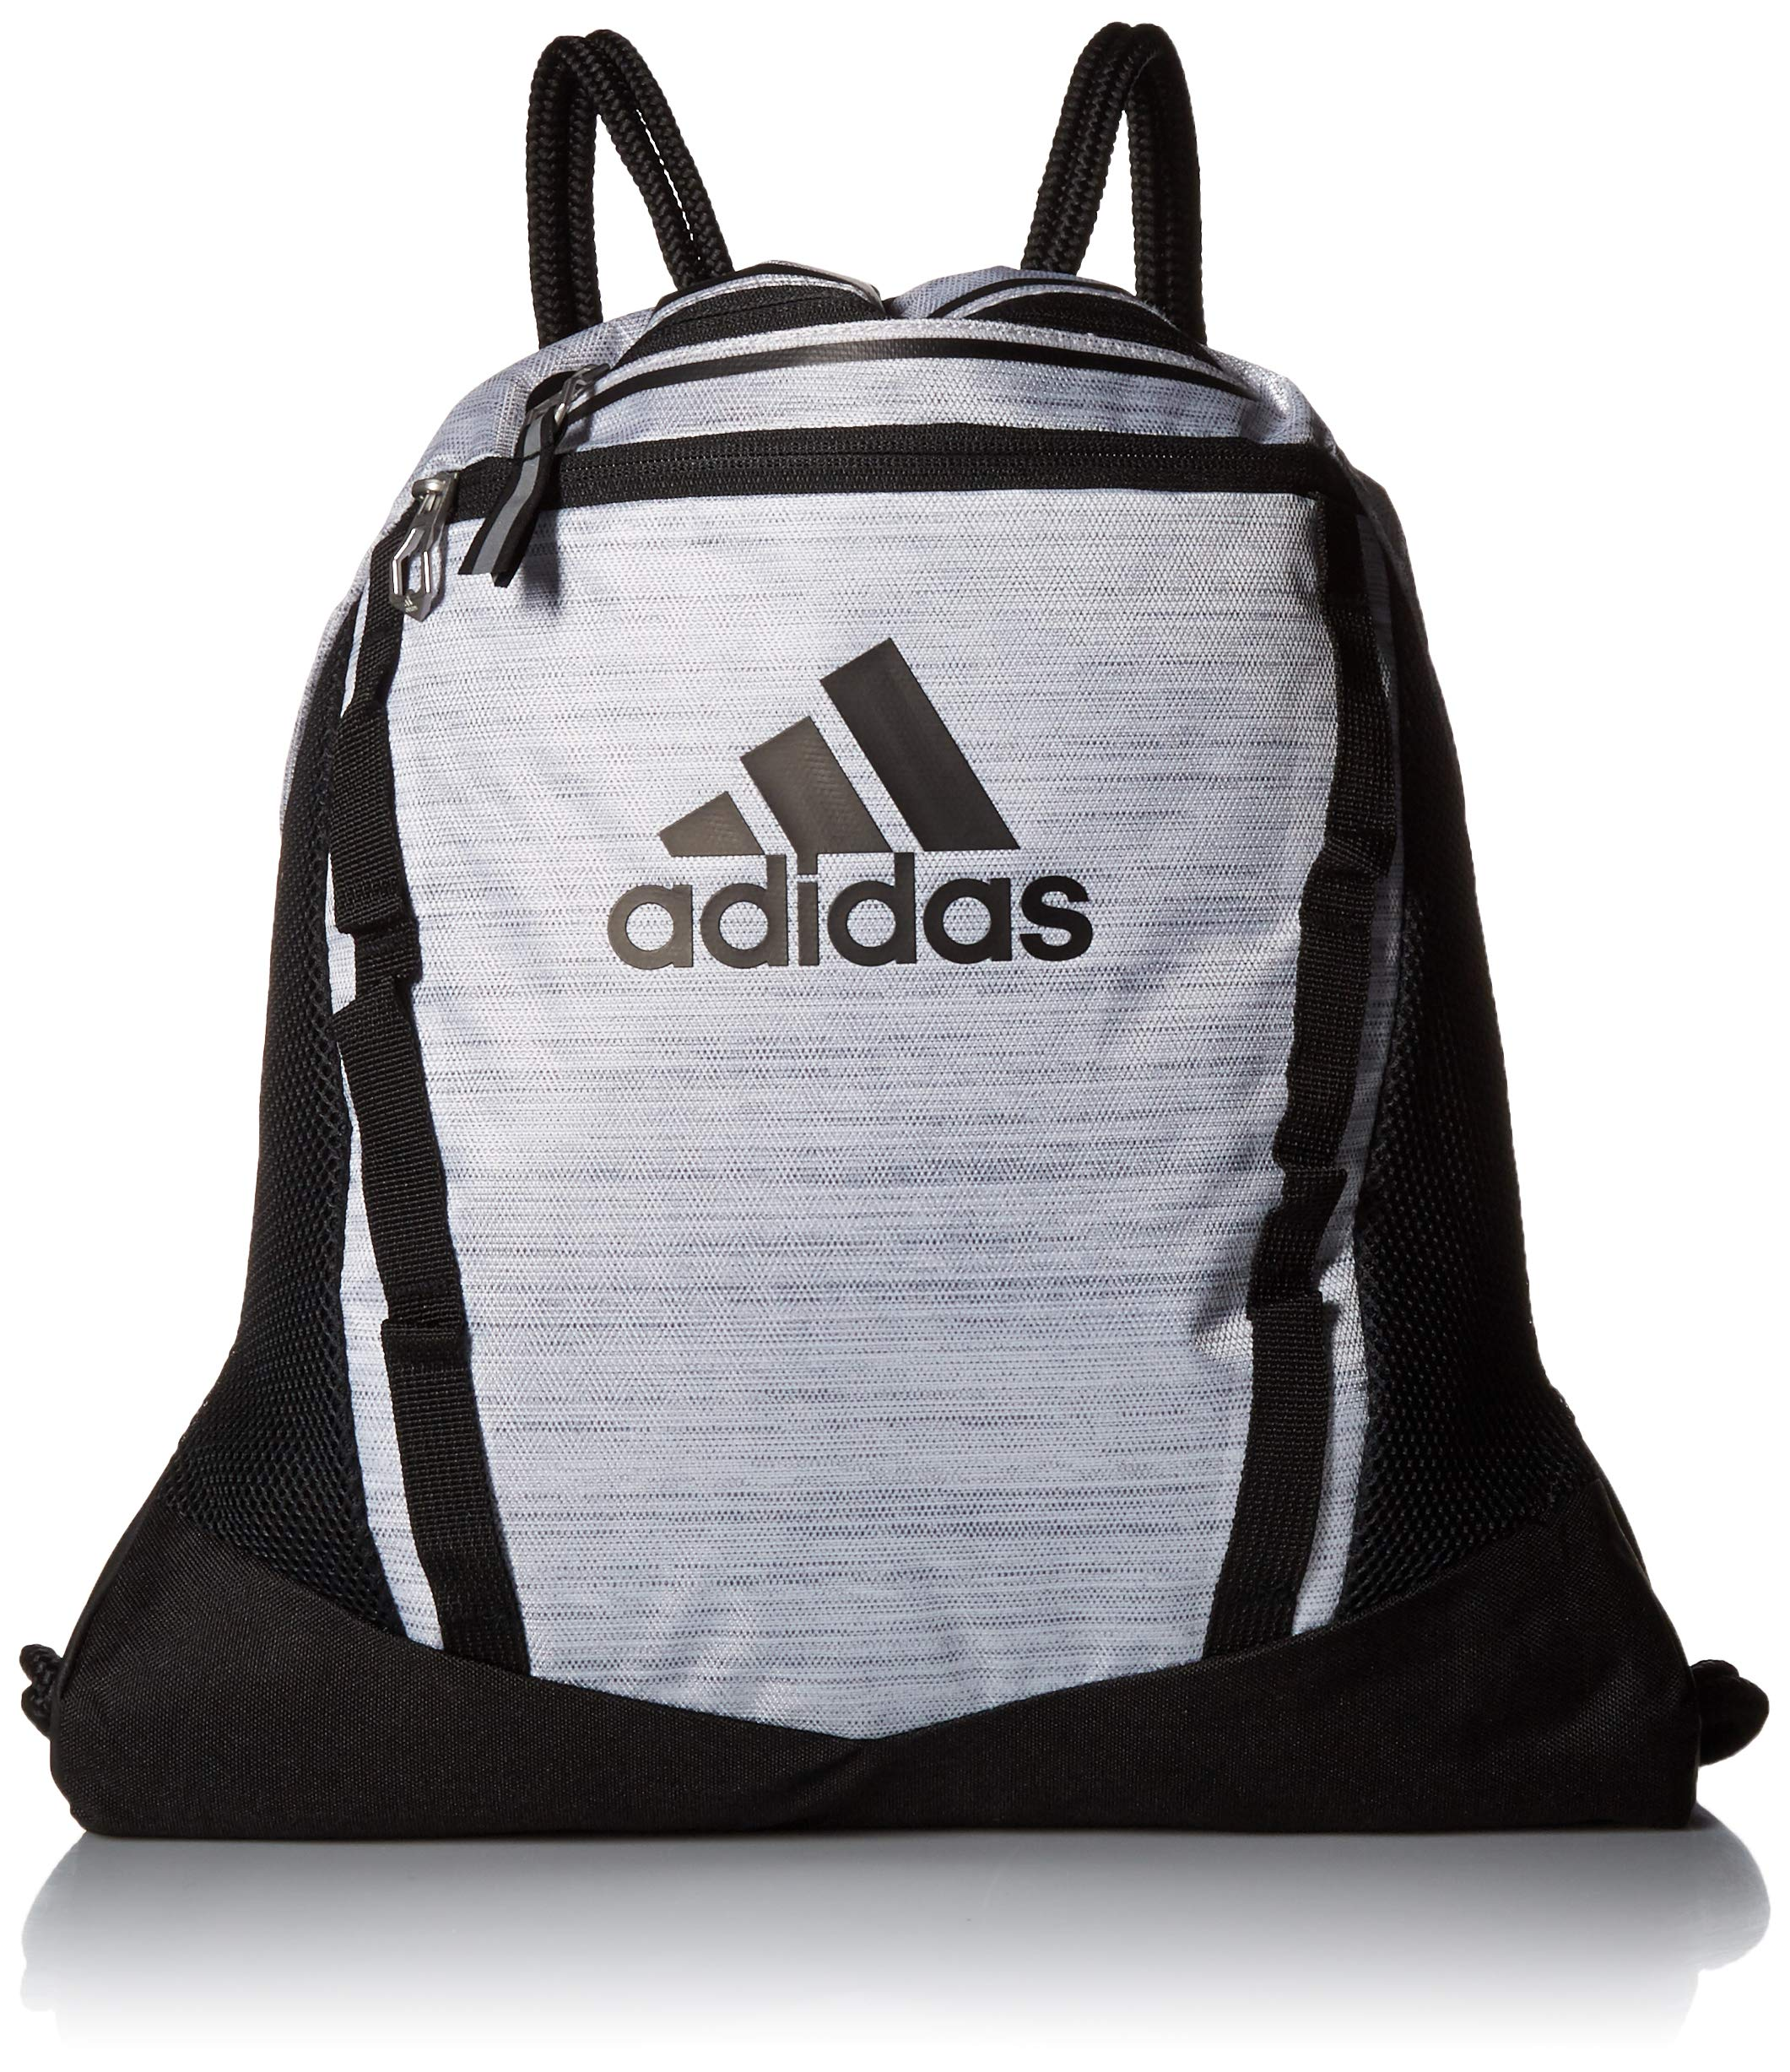 new products 9d844 7f6df Adidas Rumble Sackpack